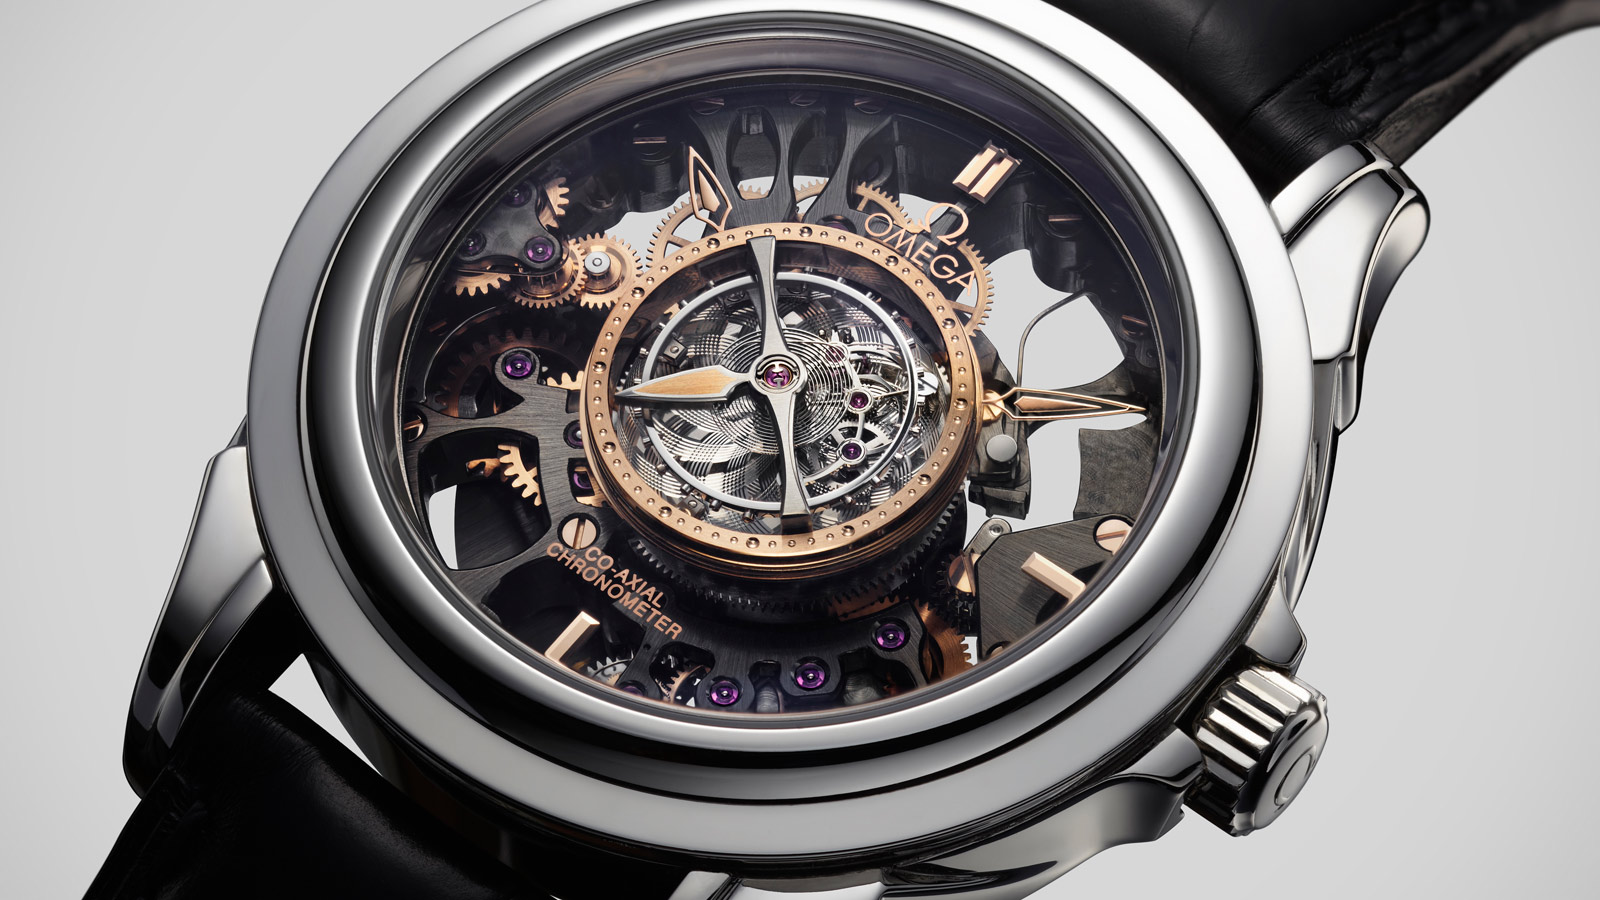 De Ville TOURBILLON Tourbillon Co‑Axial Limitierte Edition 38,7 mm - 513.93.39.21.99.001 - Anzeigen 2